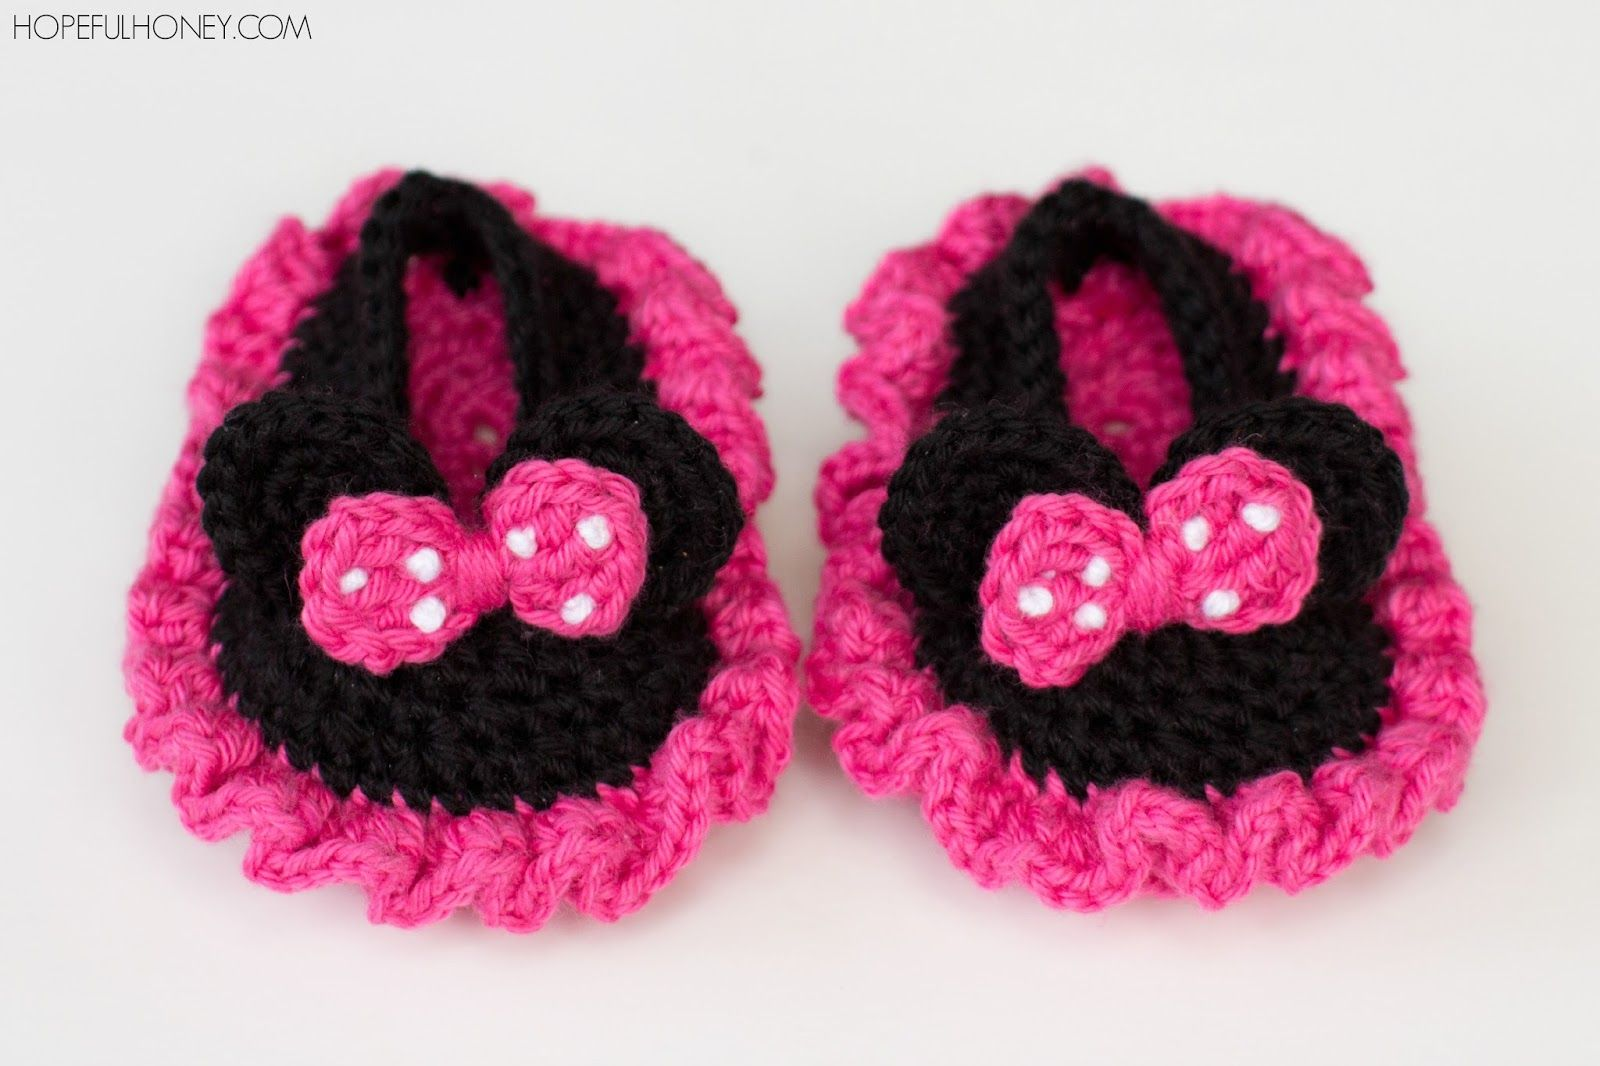 Minnie Mouse Inspired Baby Booties Crochet Pattern | Pinterest ...